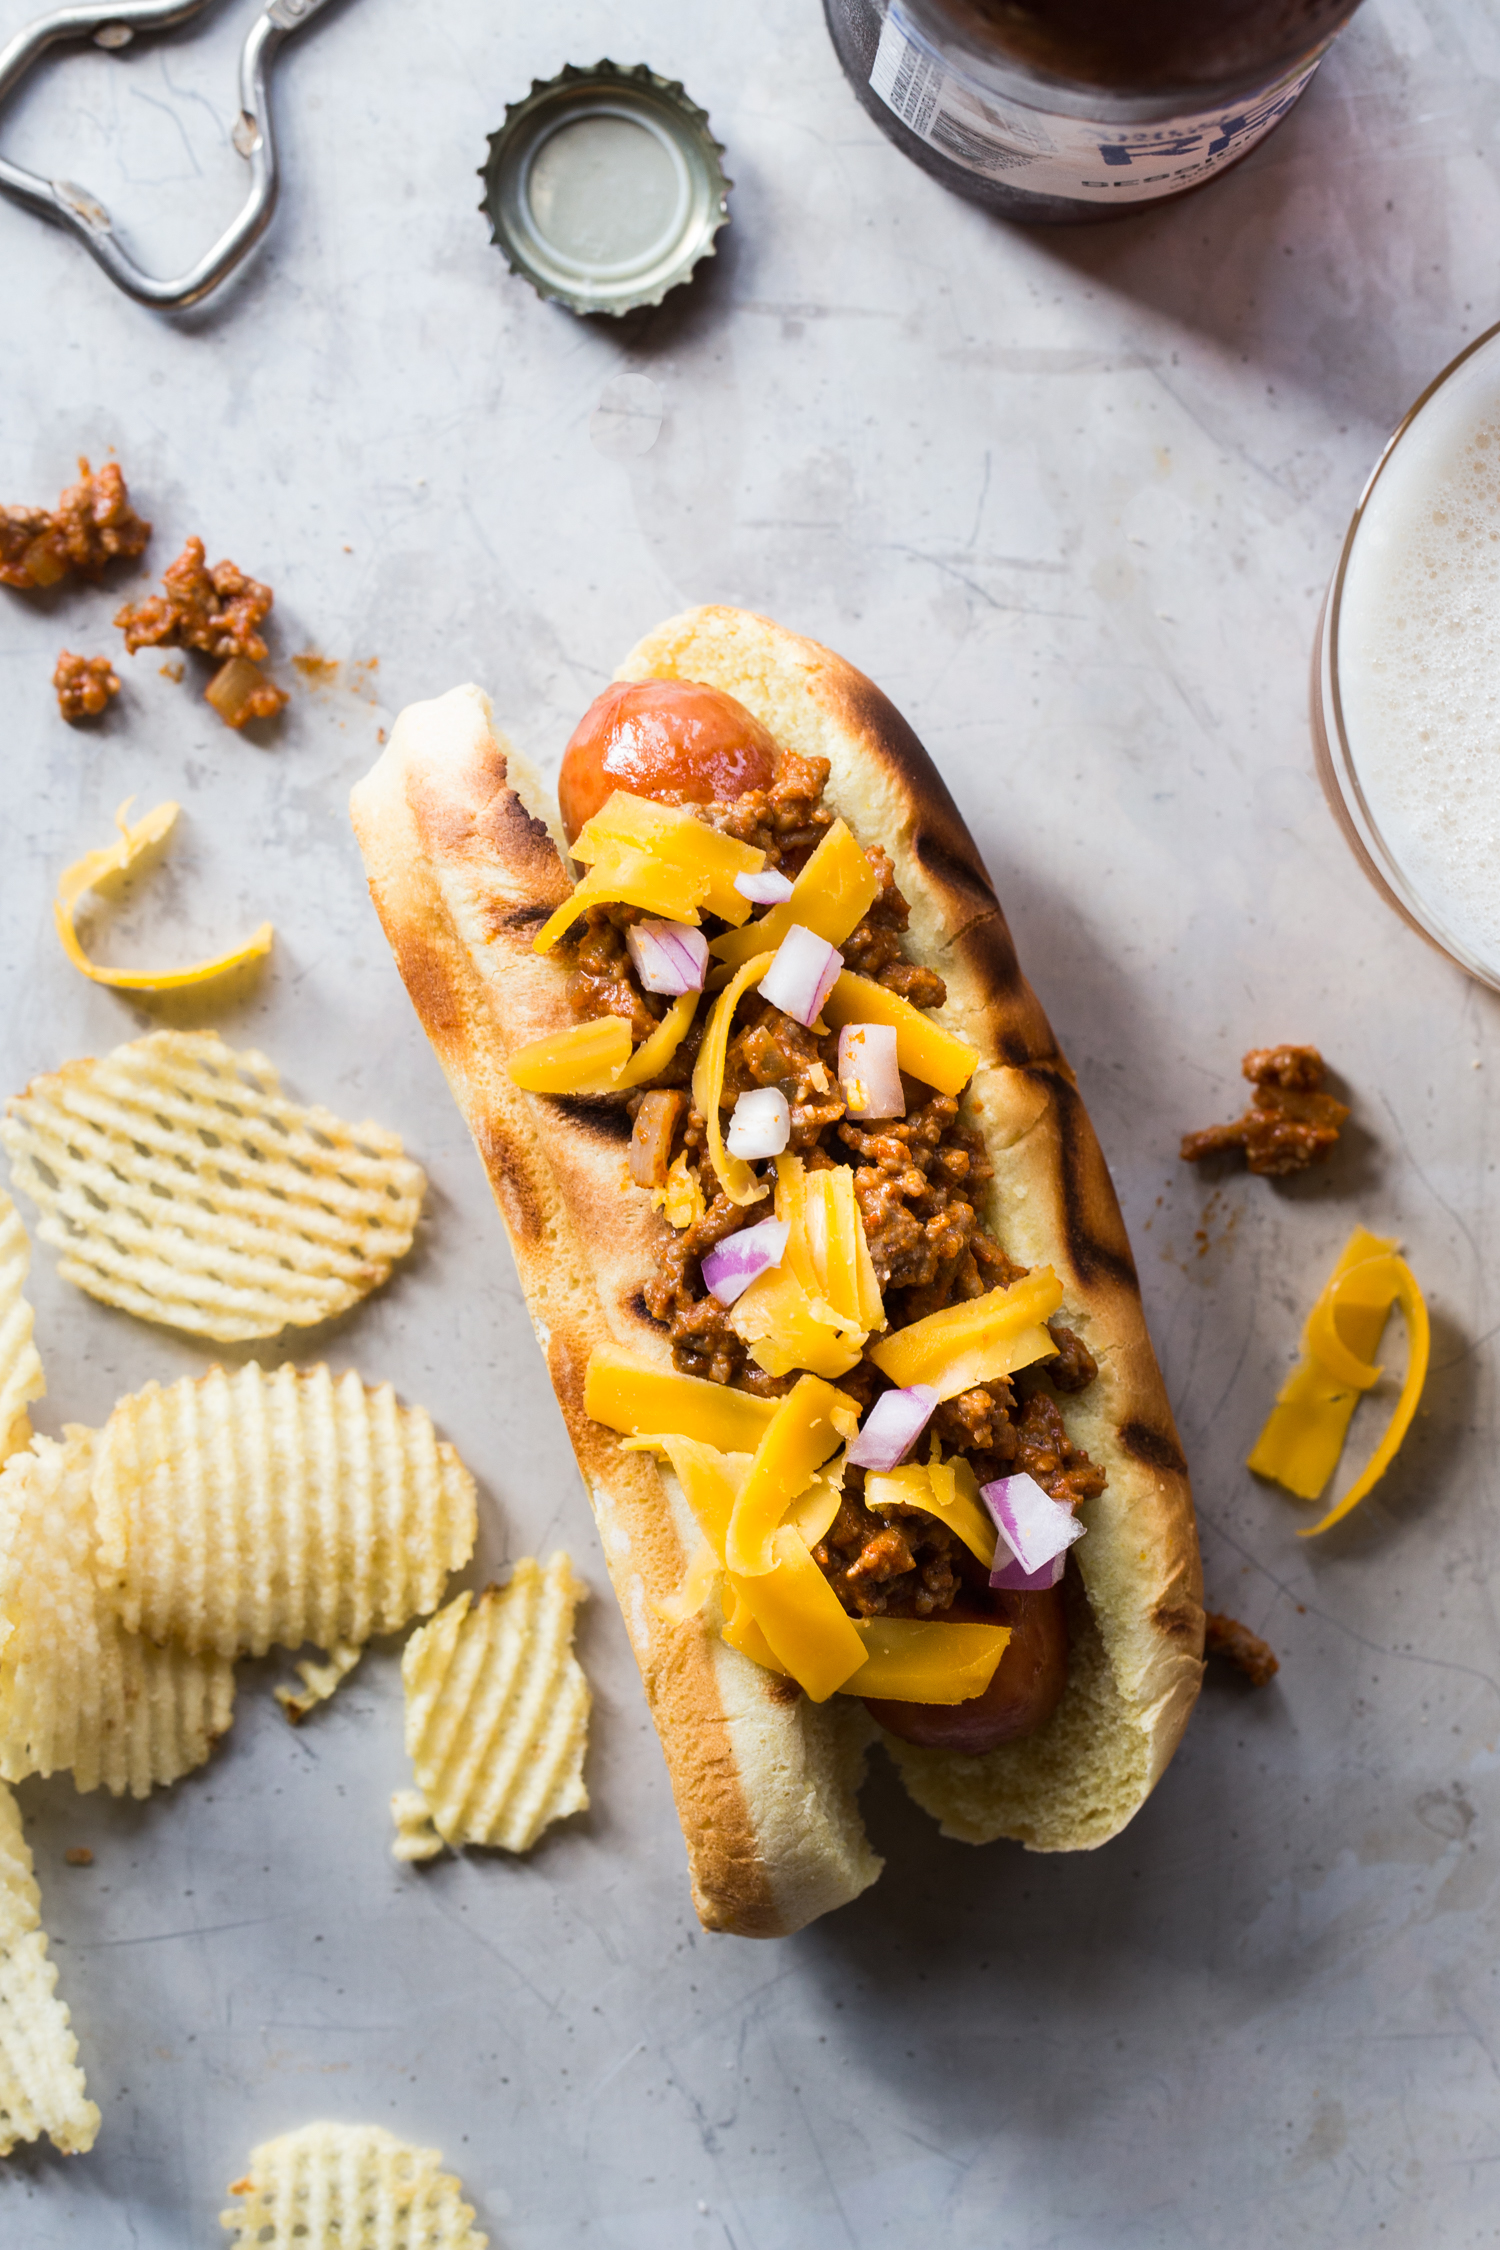 Homemade Chili Cheese Dogs - Homemade Hot Dog Toppings